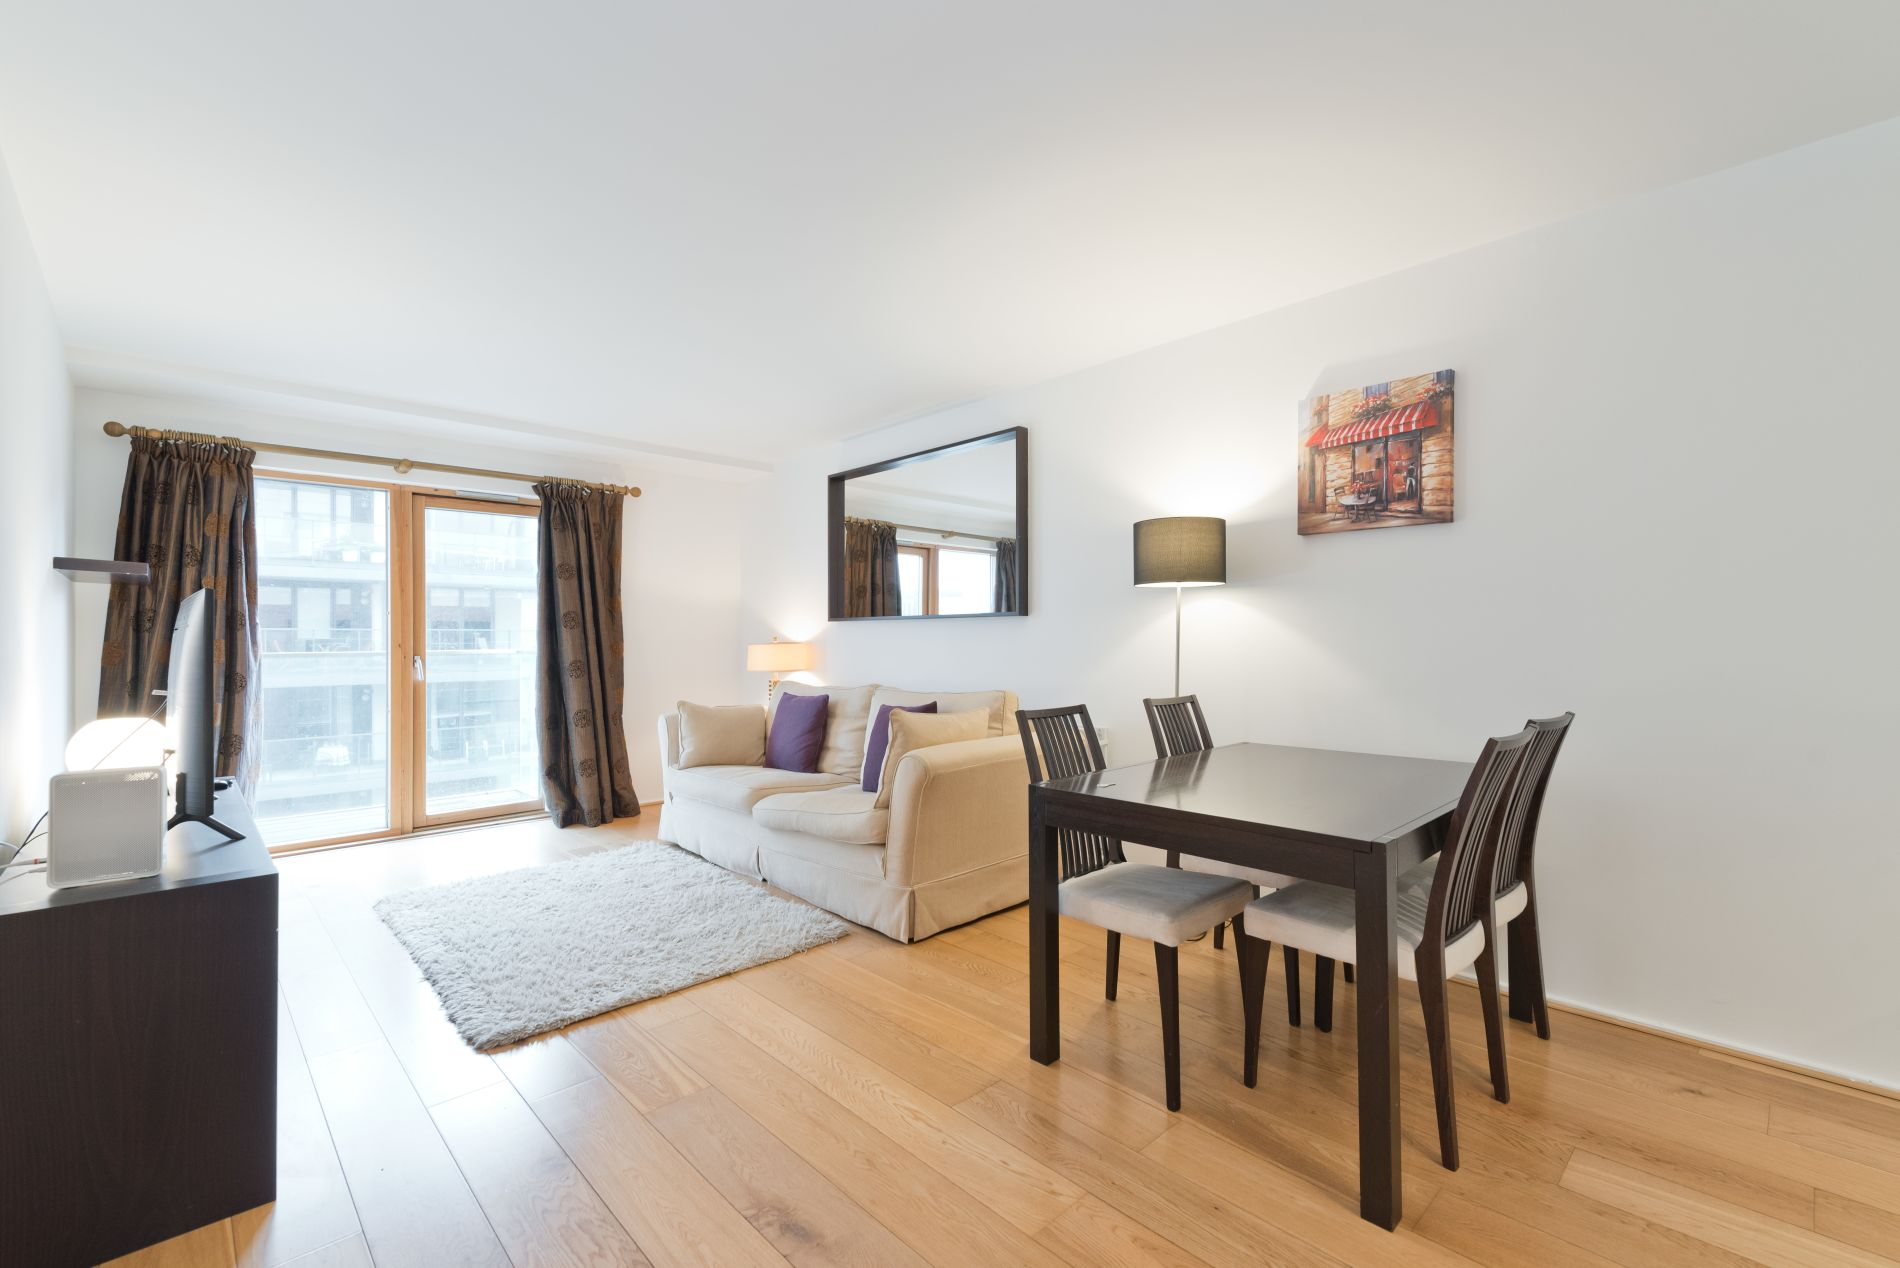 Serviced apartment rental that allows pets in Dublin Dcklands